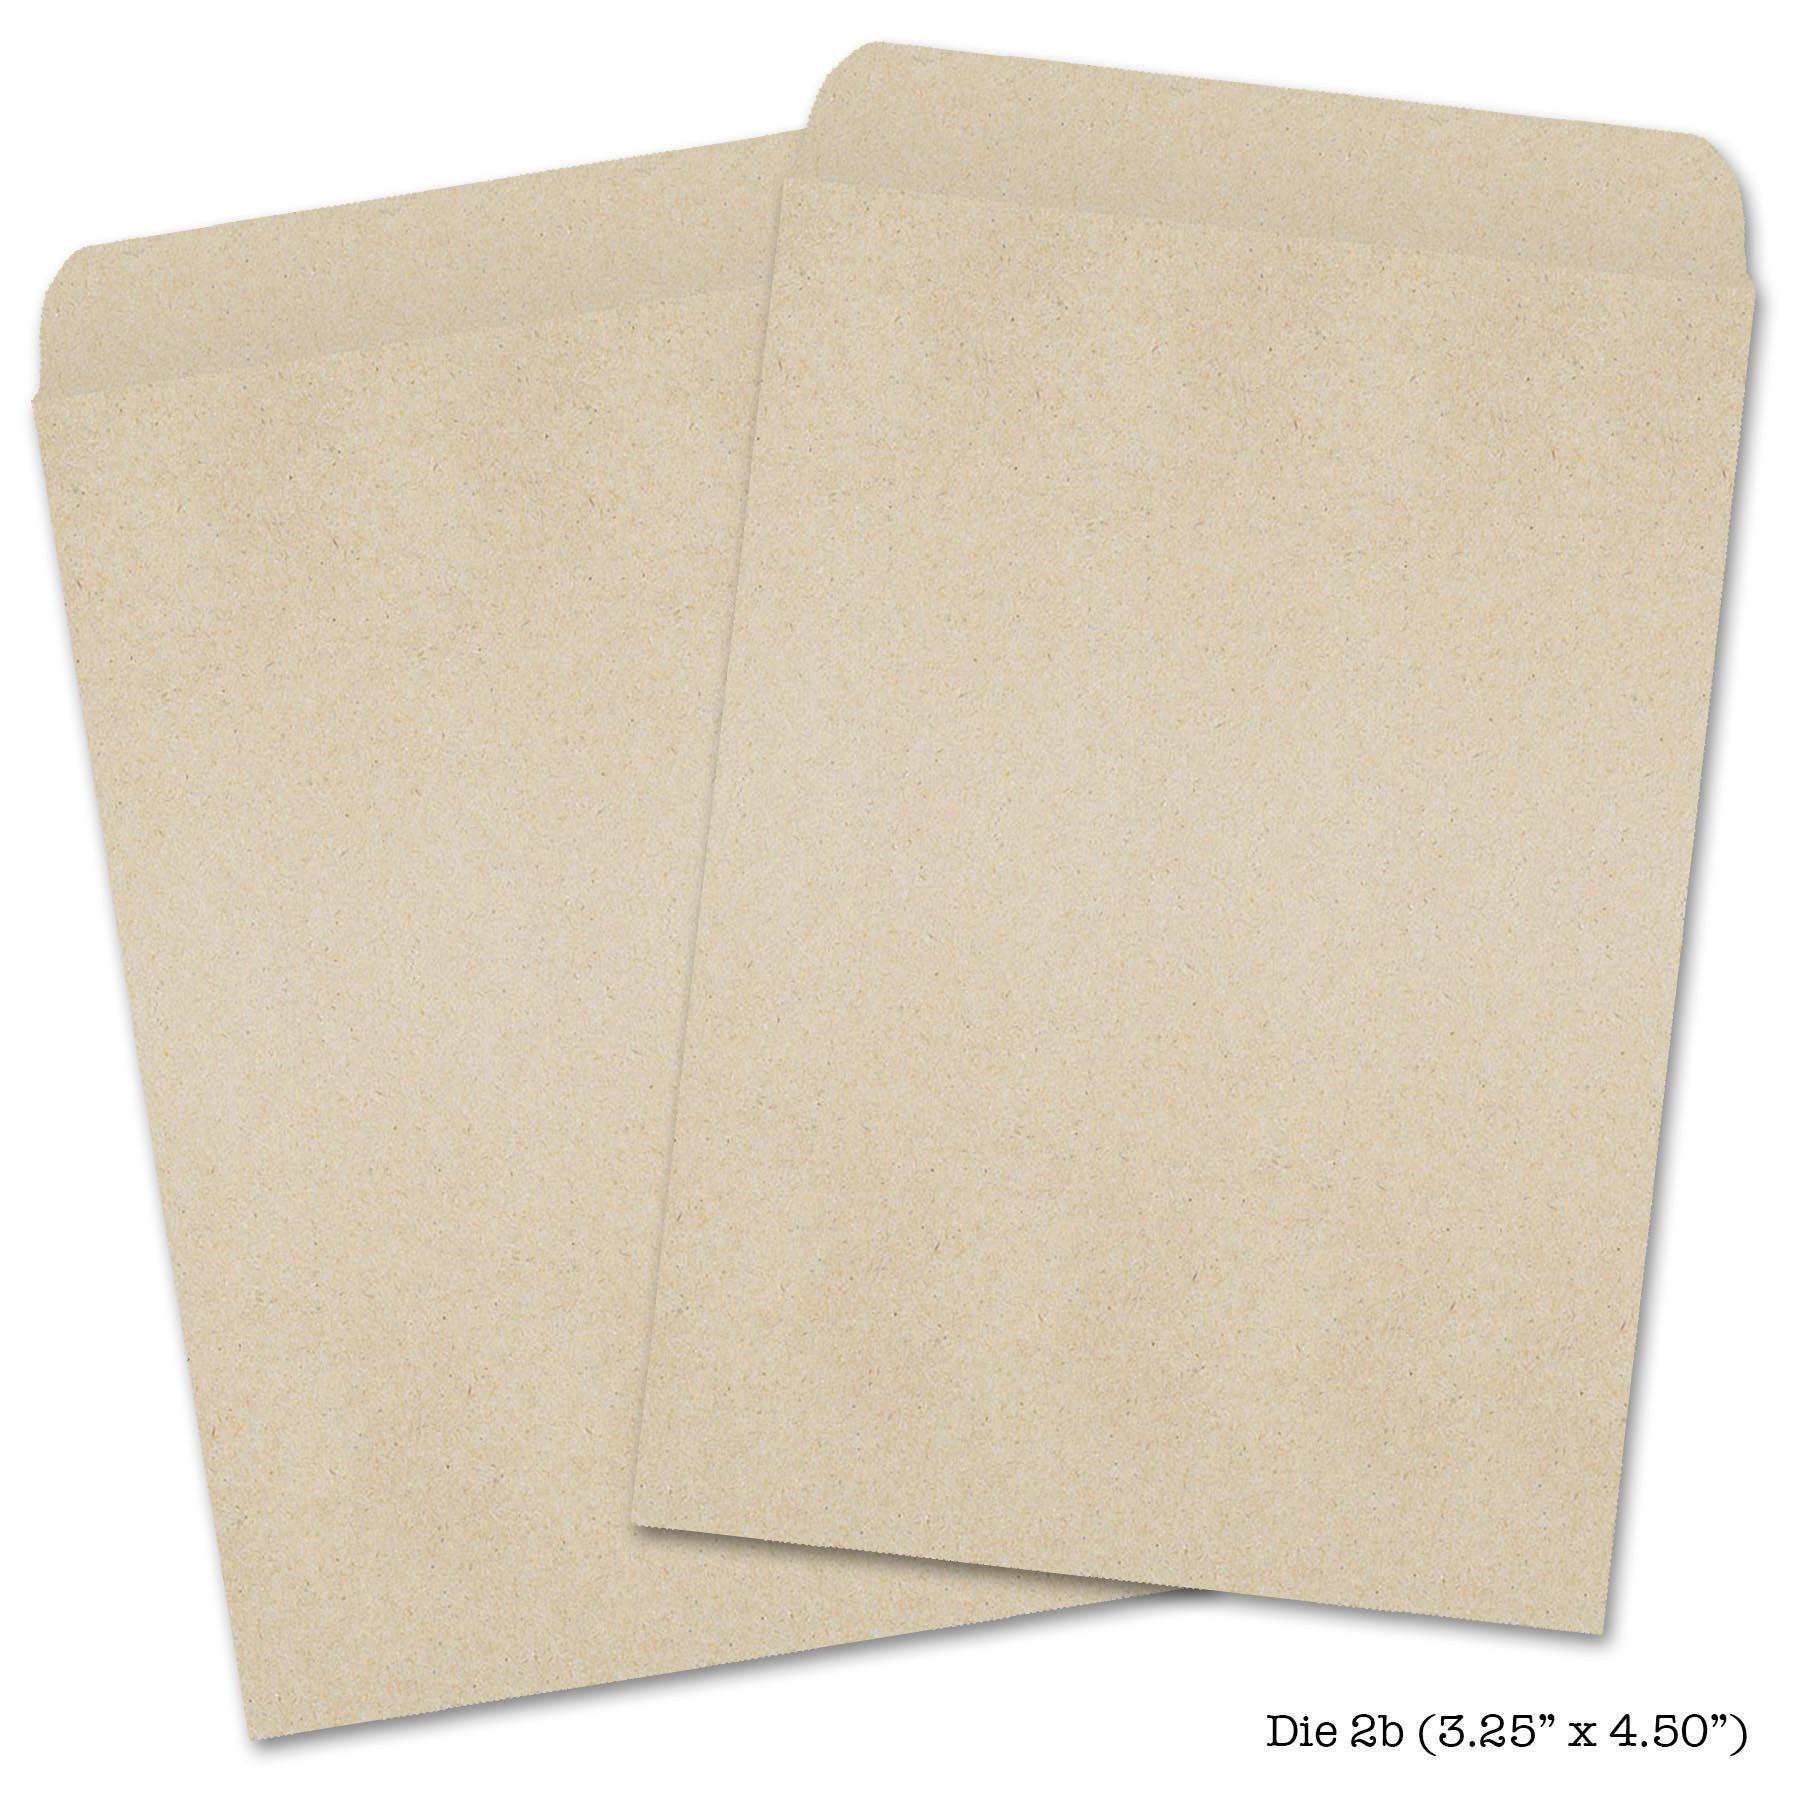 Kraft Seed Envelopes Great For Seed Packet Favors Seed Needs